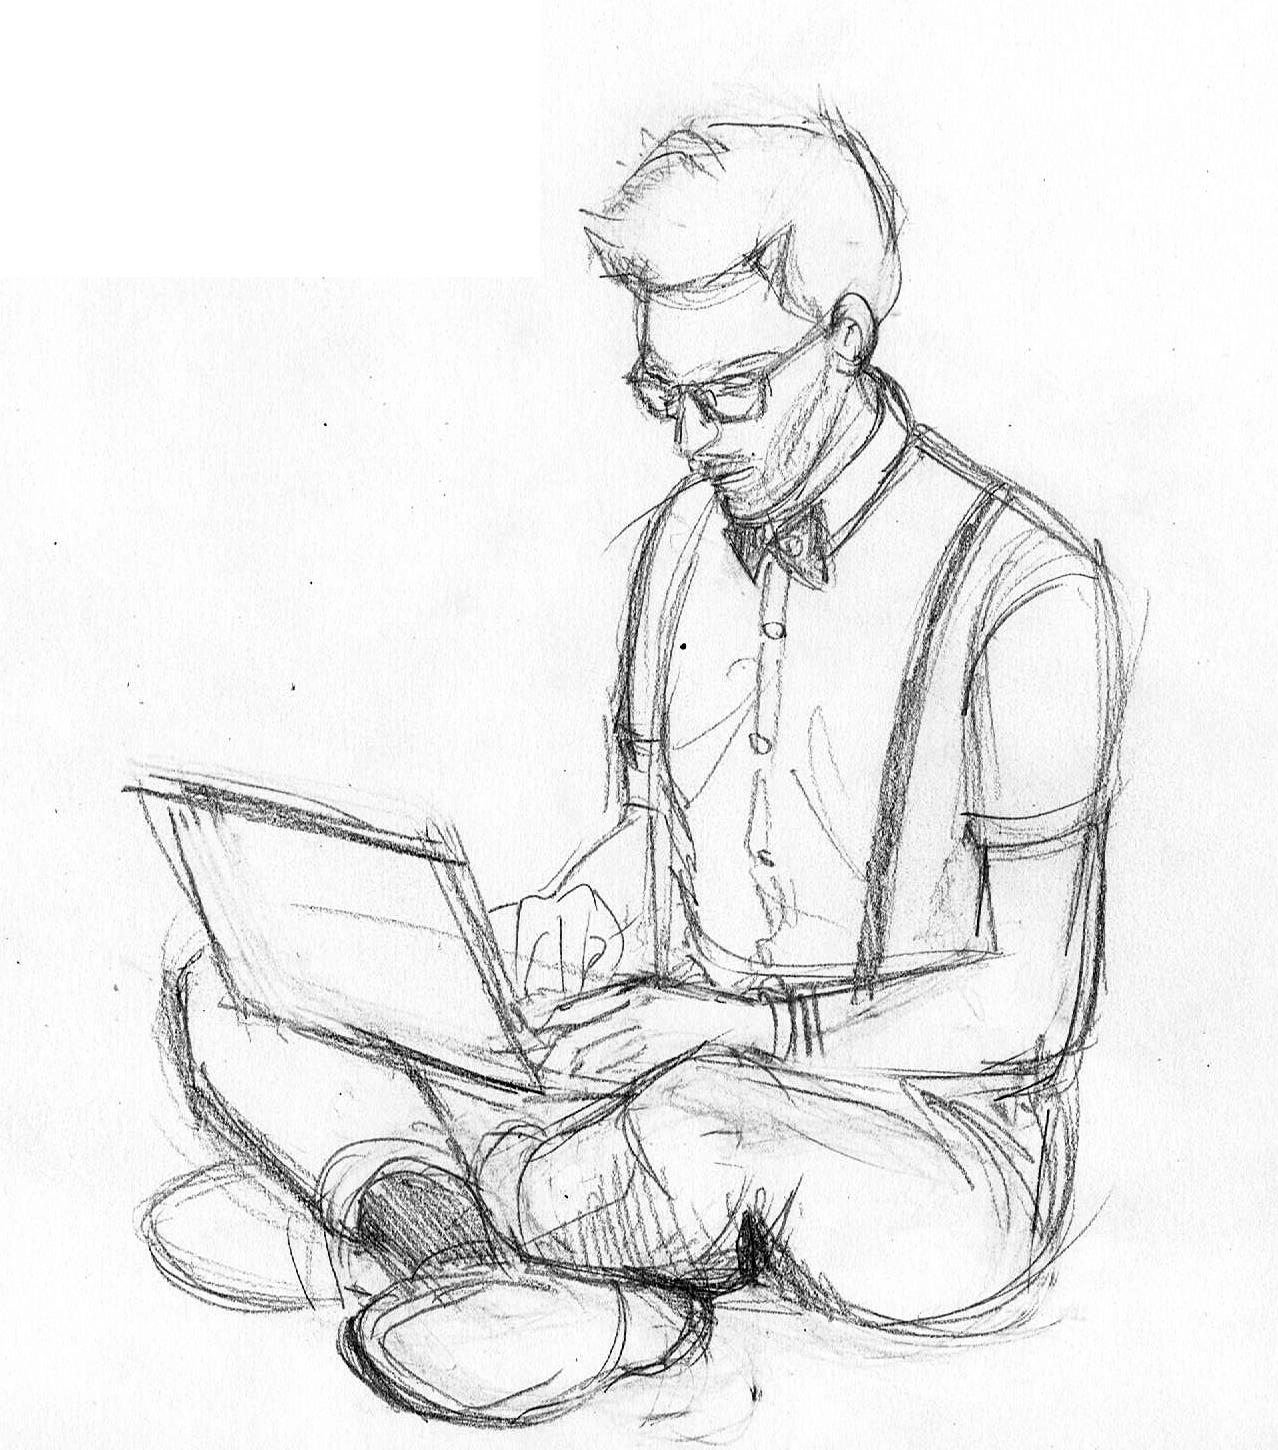 720x627 Tumblr Outline Boy Outlines Pinterest Draw 1278x1450 Visual Diary February 2013